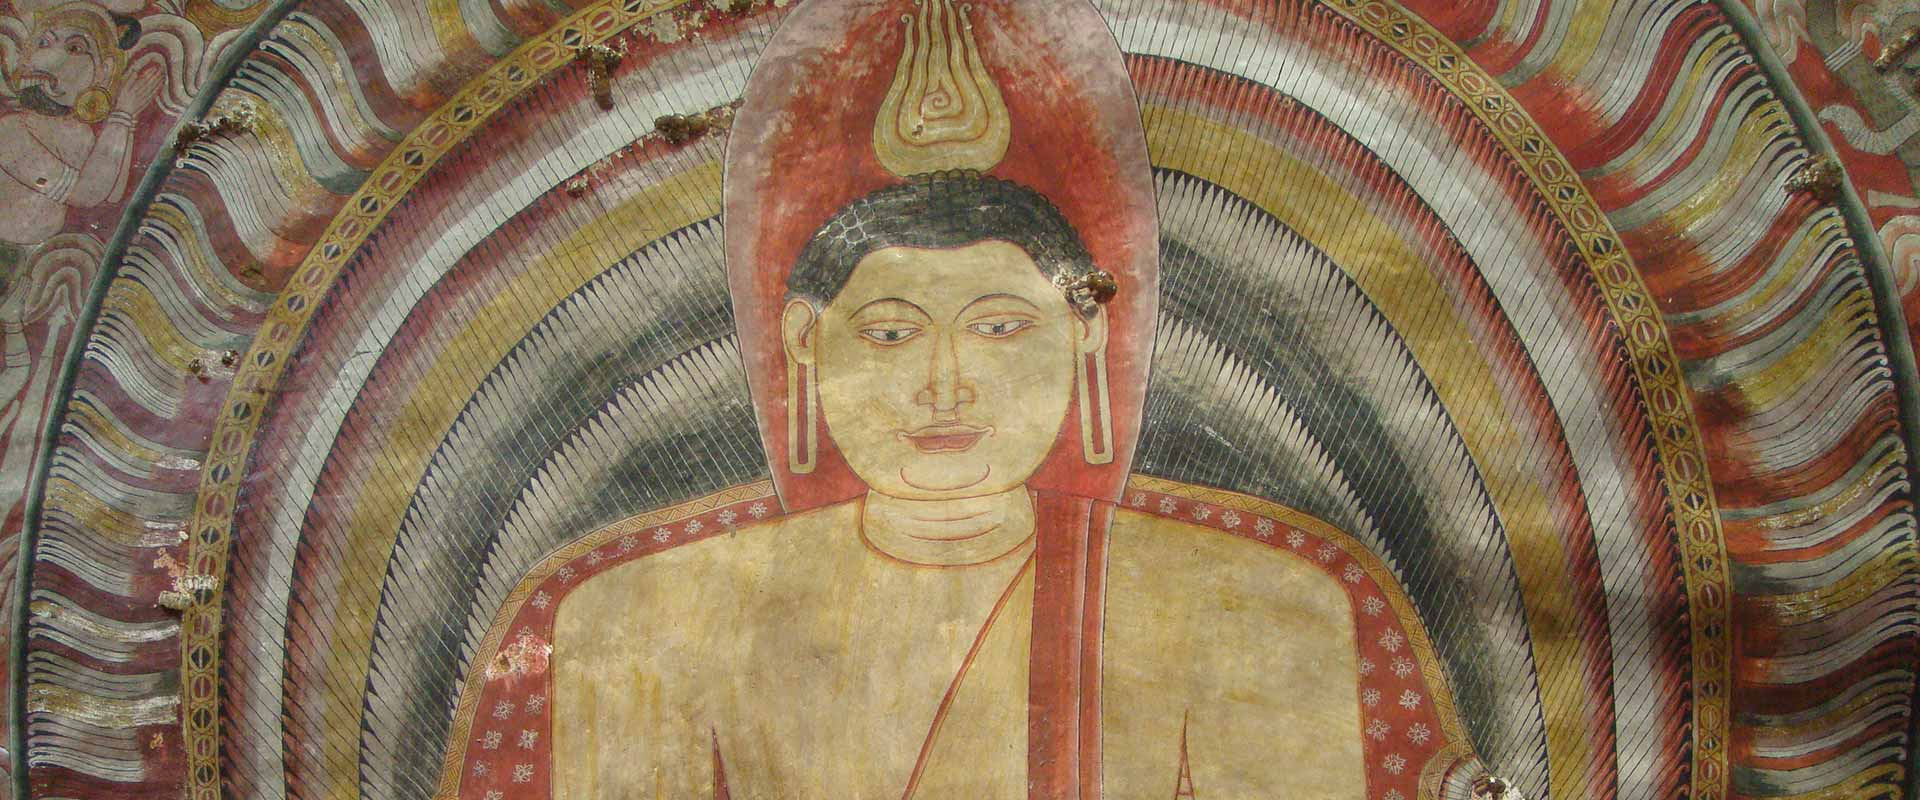 Buddha image at Dambulla Cave Temple